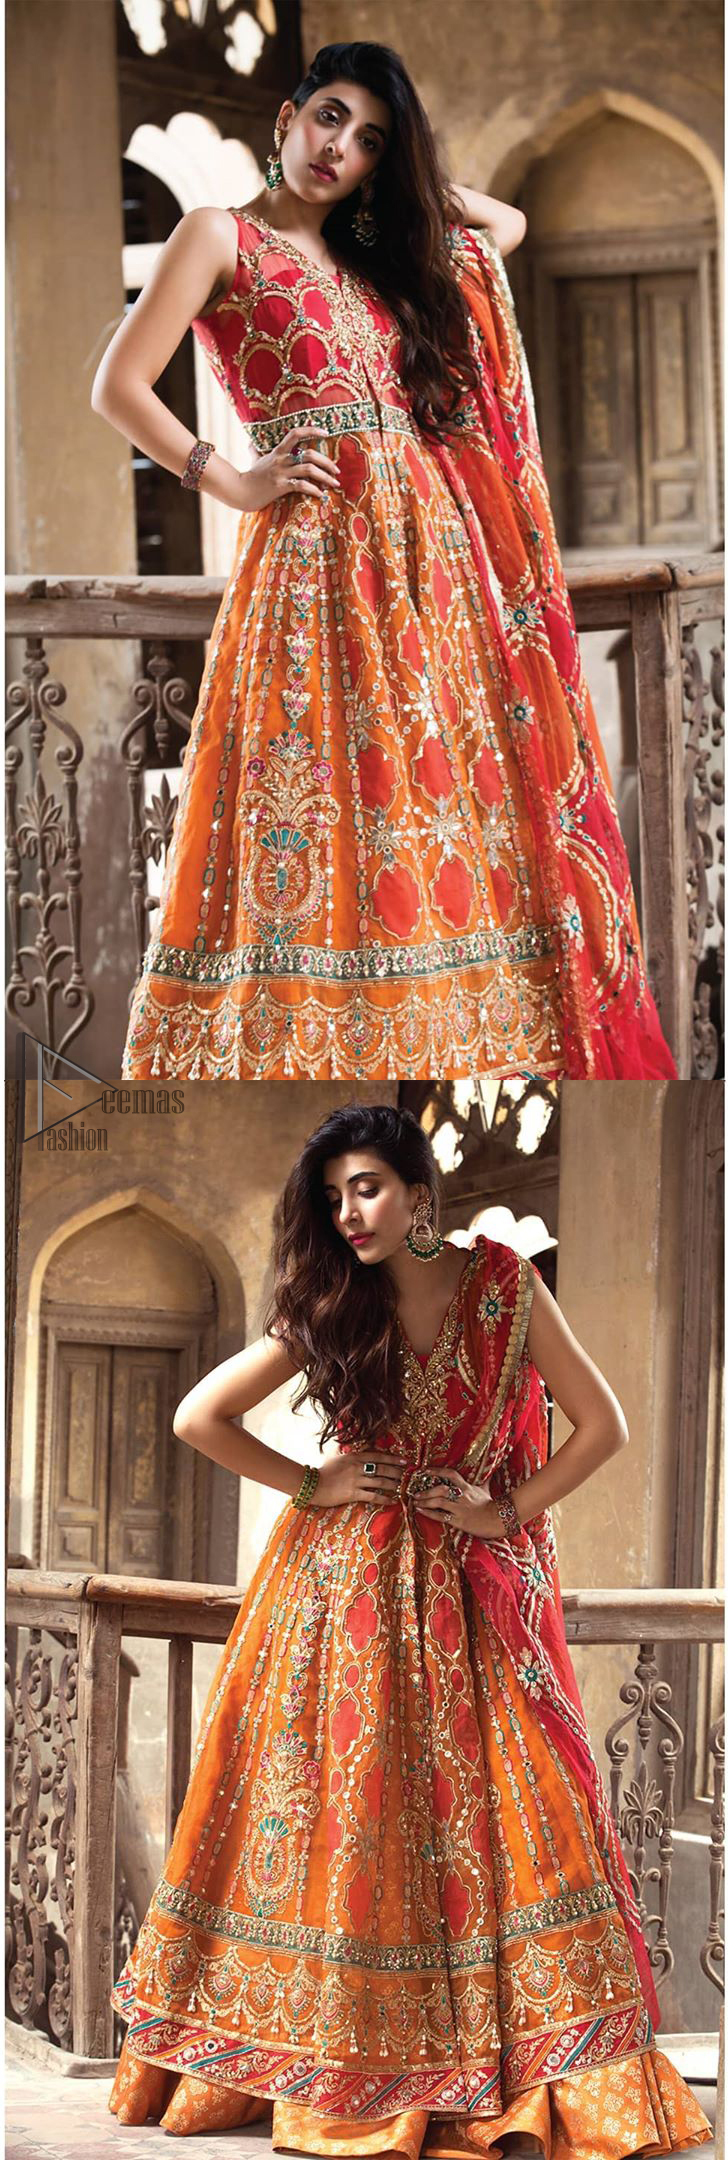 This artisanal piece is rendered in grace and timelessness. Brighten up your look with this mix of floral and geometrical embroidery in vibrant tones spread across on red and orange canvas. The front open pishwas is delicately crafted with zardozi work, multiple color embroidery and mirror work. Furthermore it is also adorned with green embellished applique and the colorful applique lift the whole bottom. It comprises with orange sharara. Finished the dress with red and orange organza dupatta with geometric patterns on the ground.